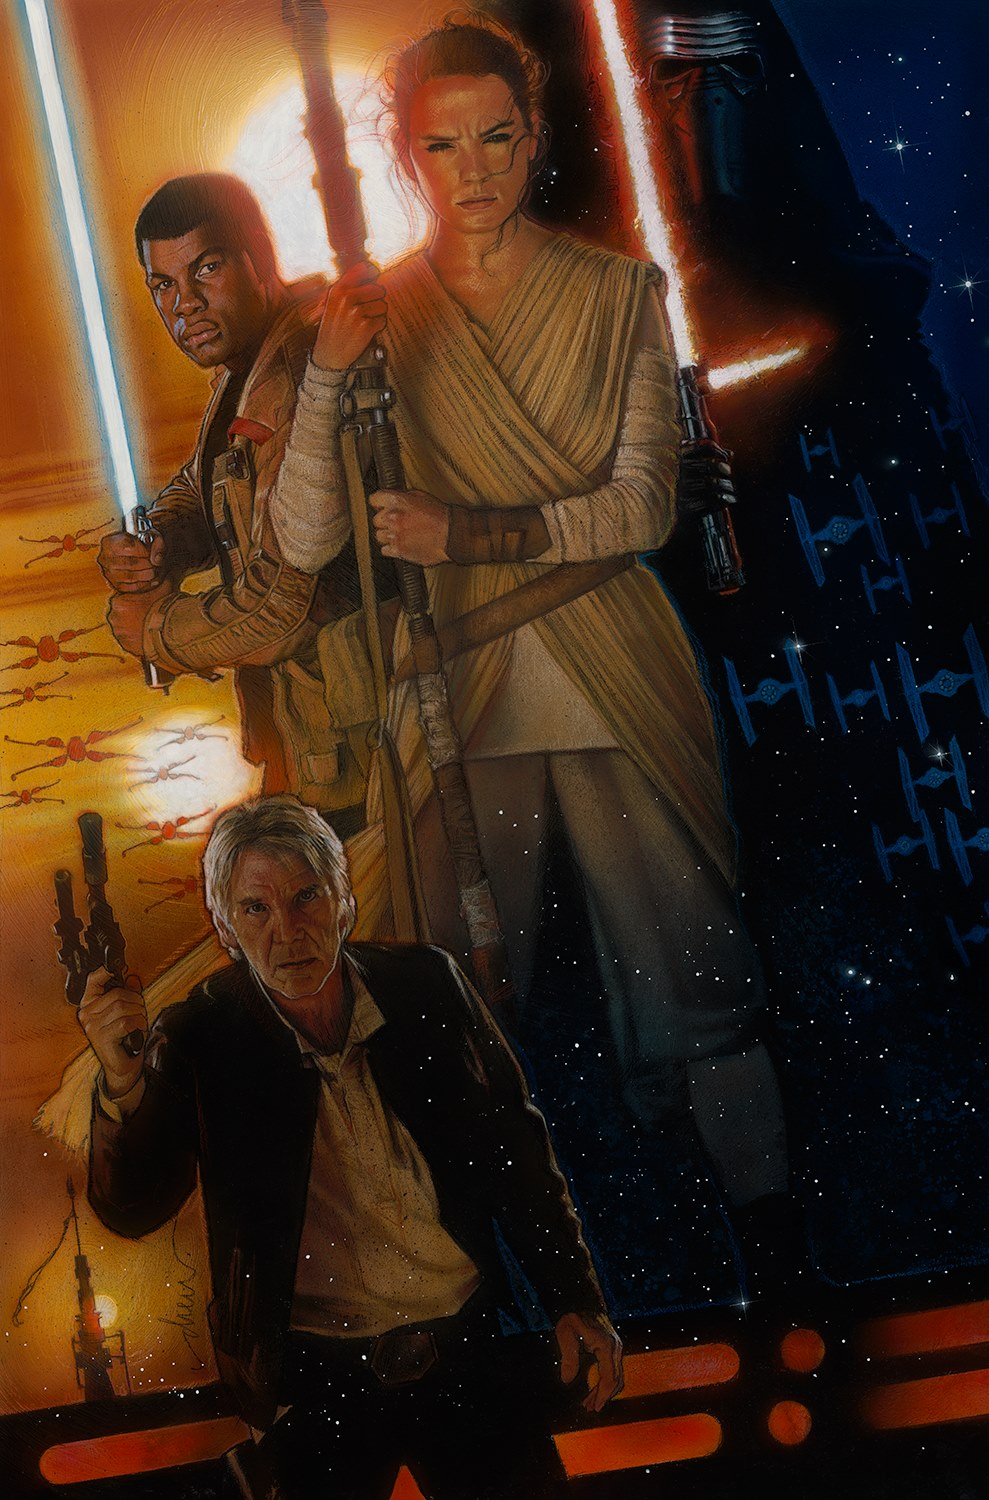 star-wars-the-force-awakens-teaser-poster-989x1500